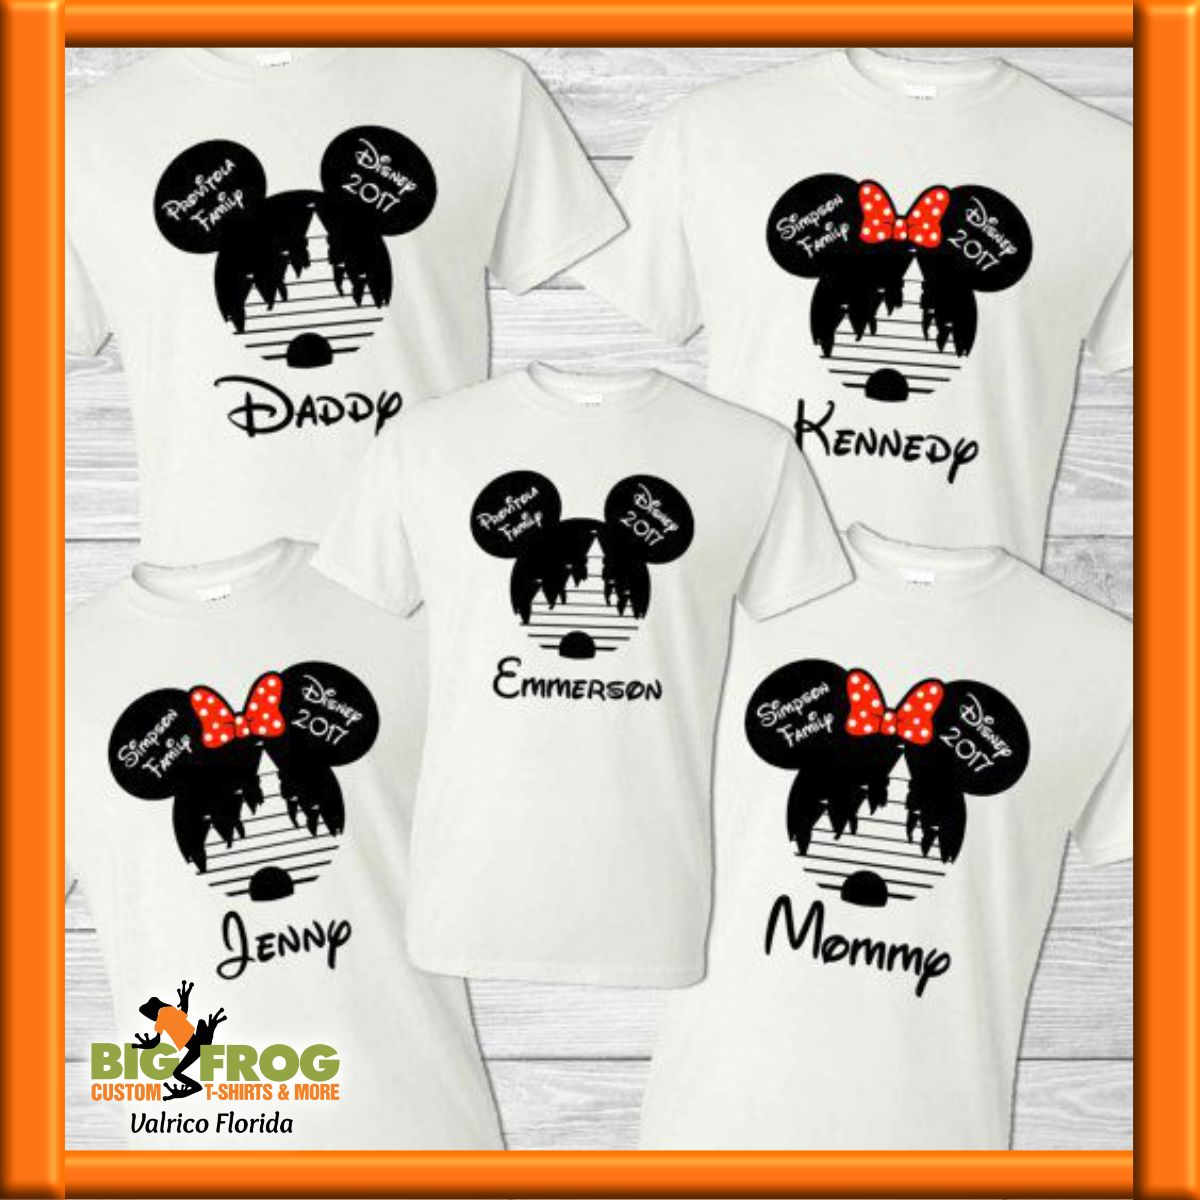 a89860036 Cool Graphic Tees at Cheap Prices - U.S. Custom Tees